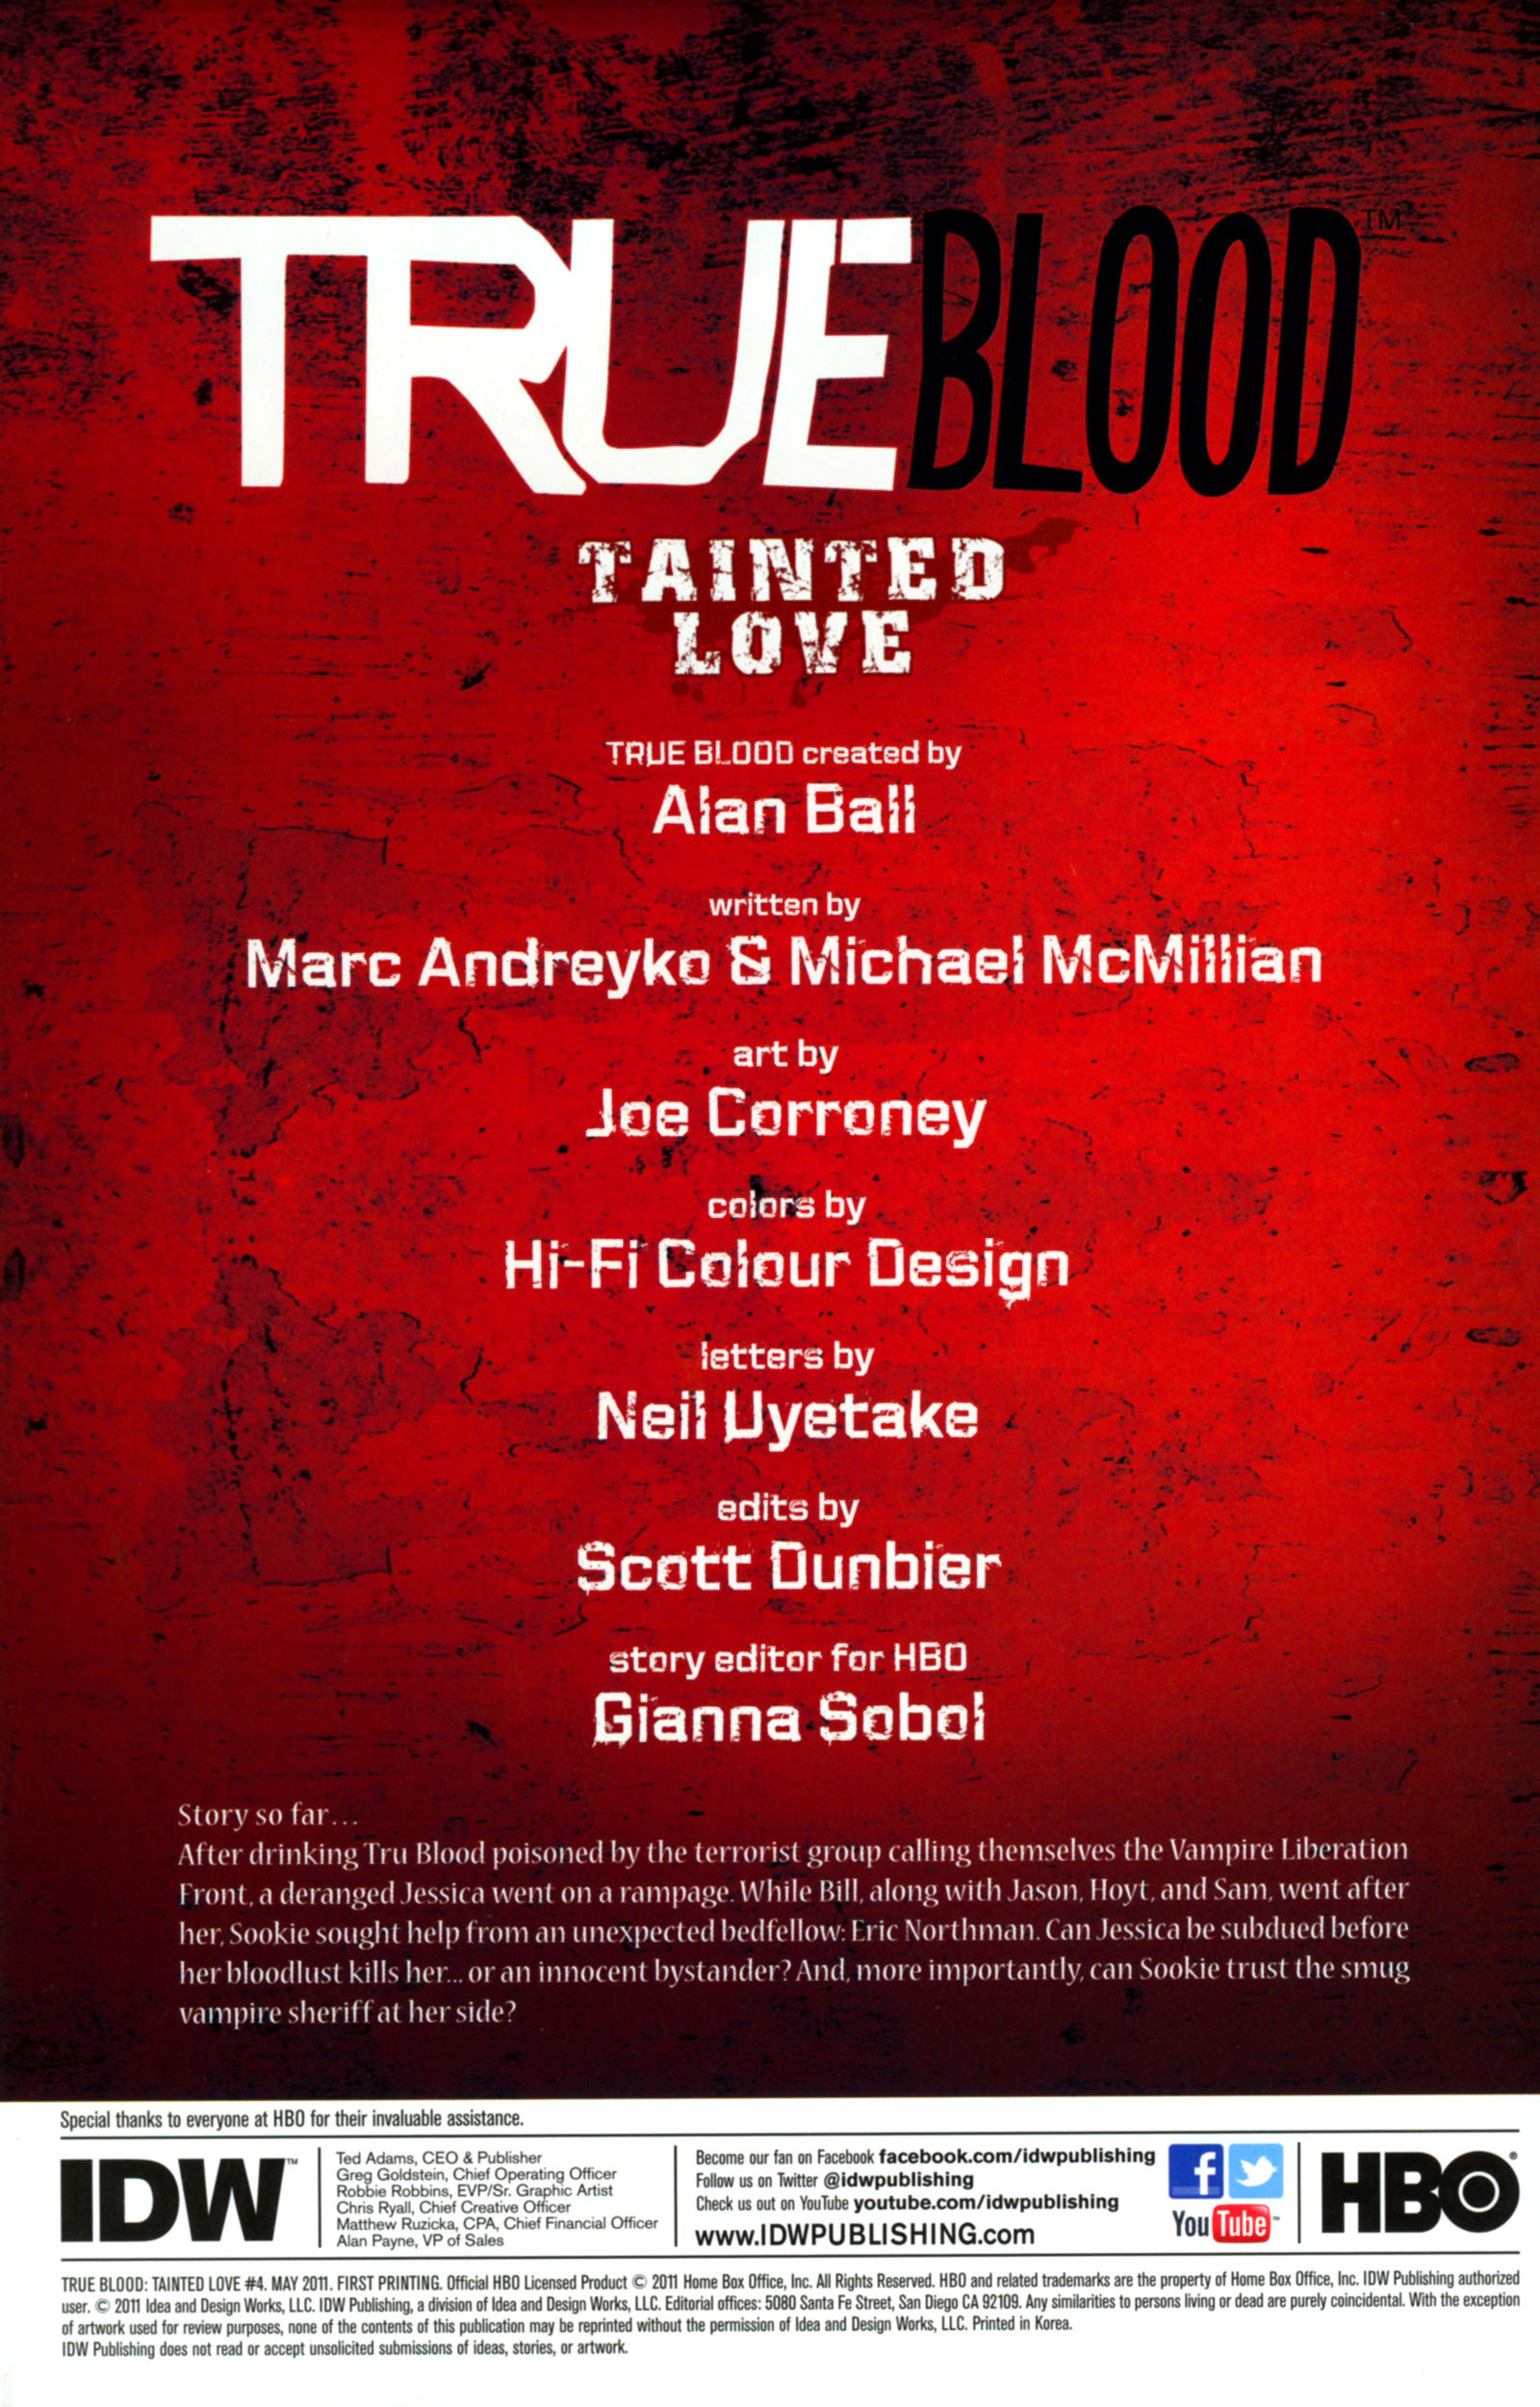 Read online True Blood: Tainted Love comic -  Issue #4 - 2